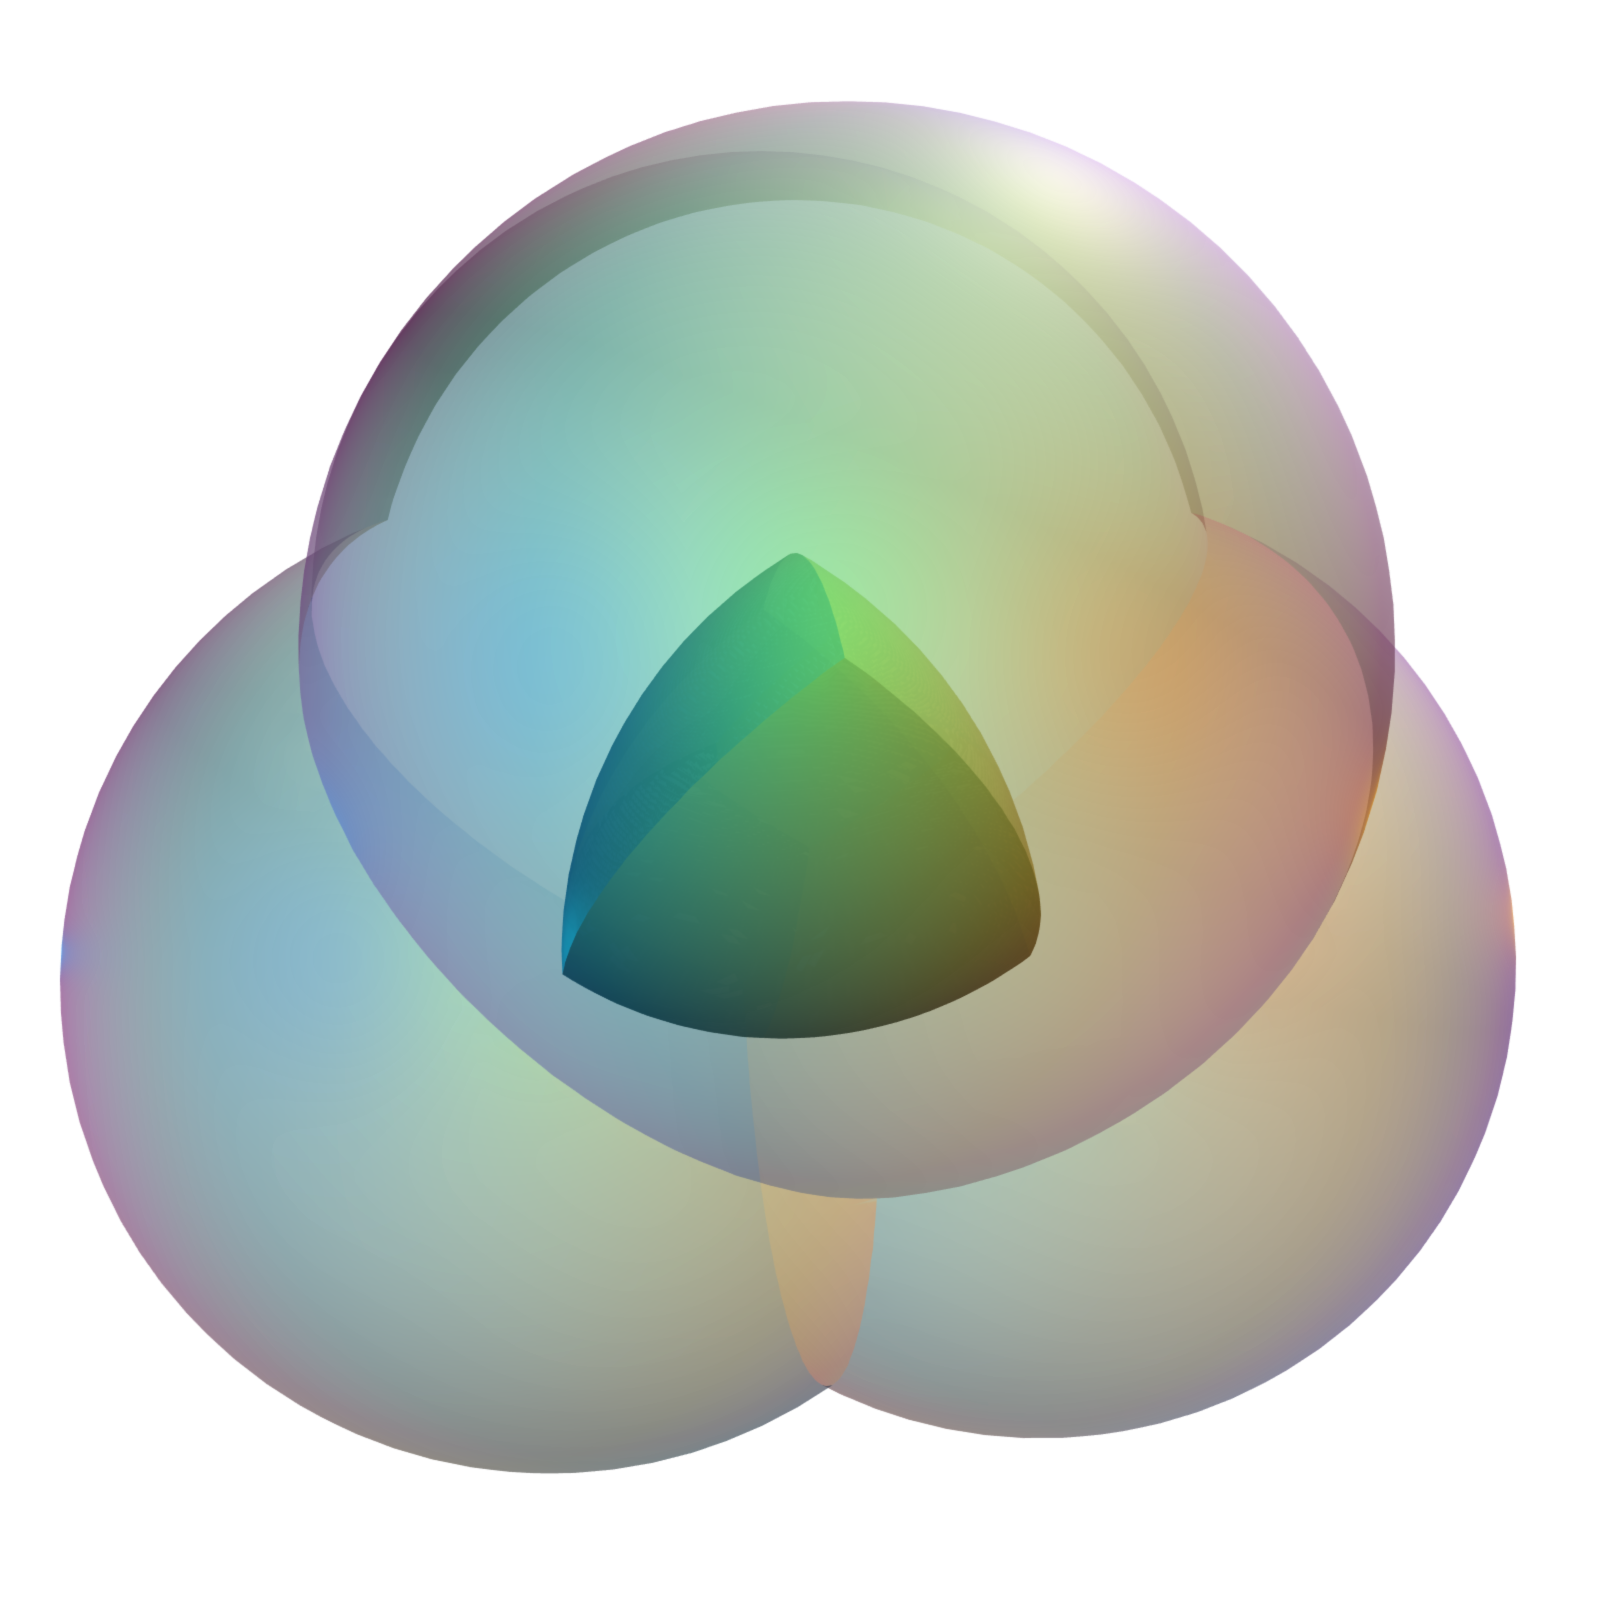 Volume and Surface area of the Spherical Tetrahedron